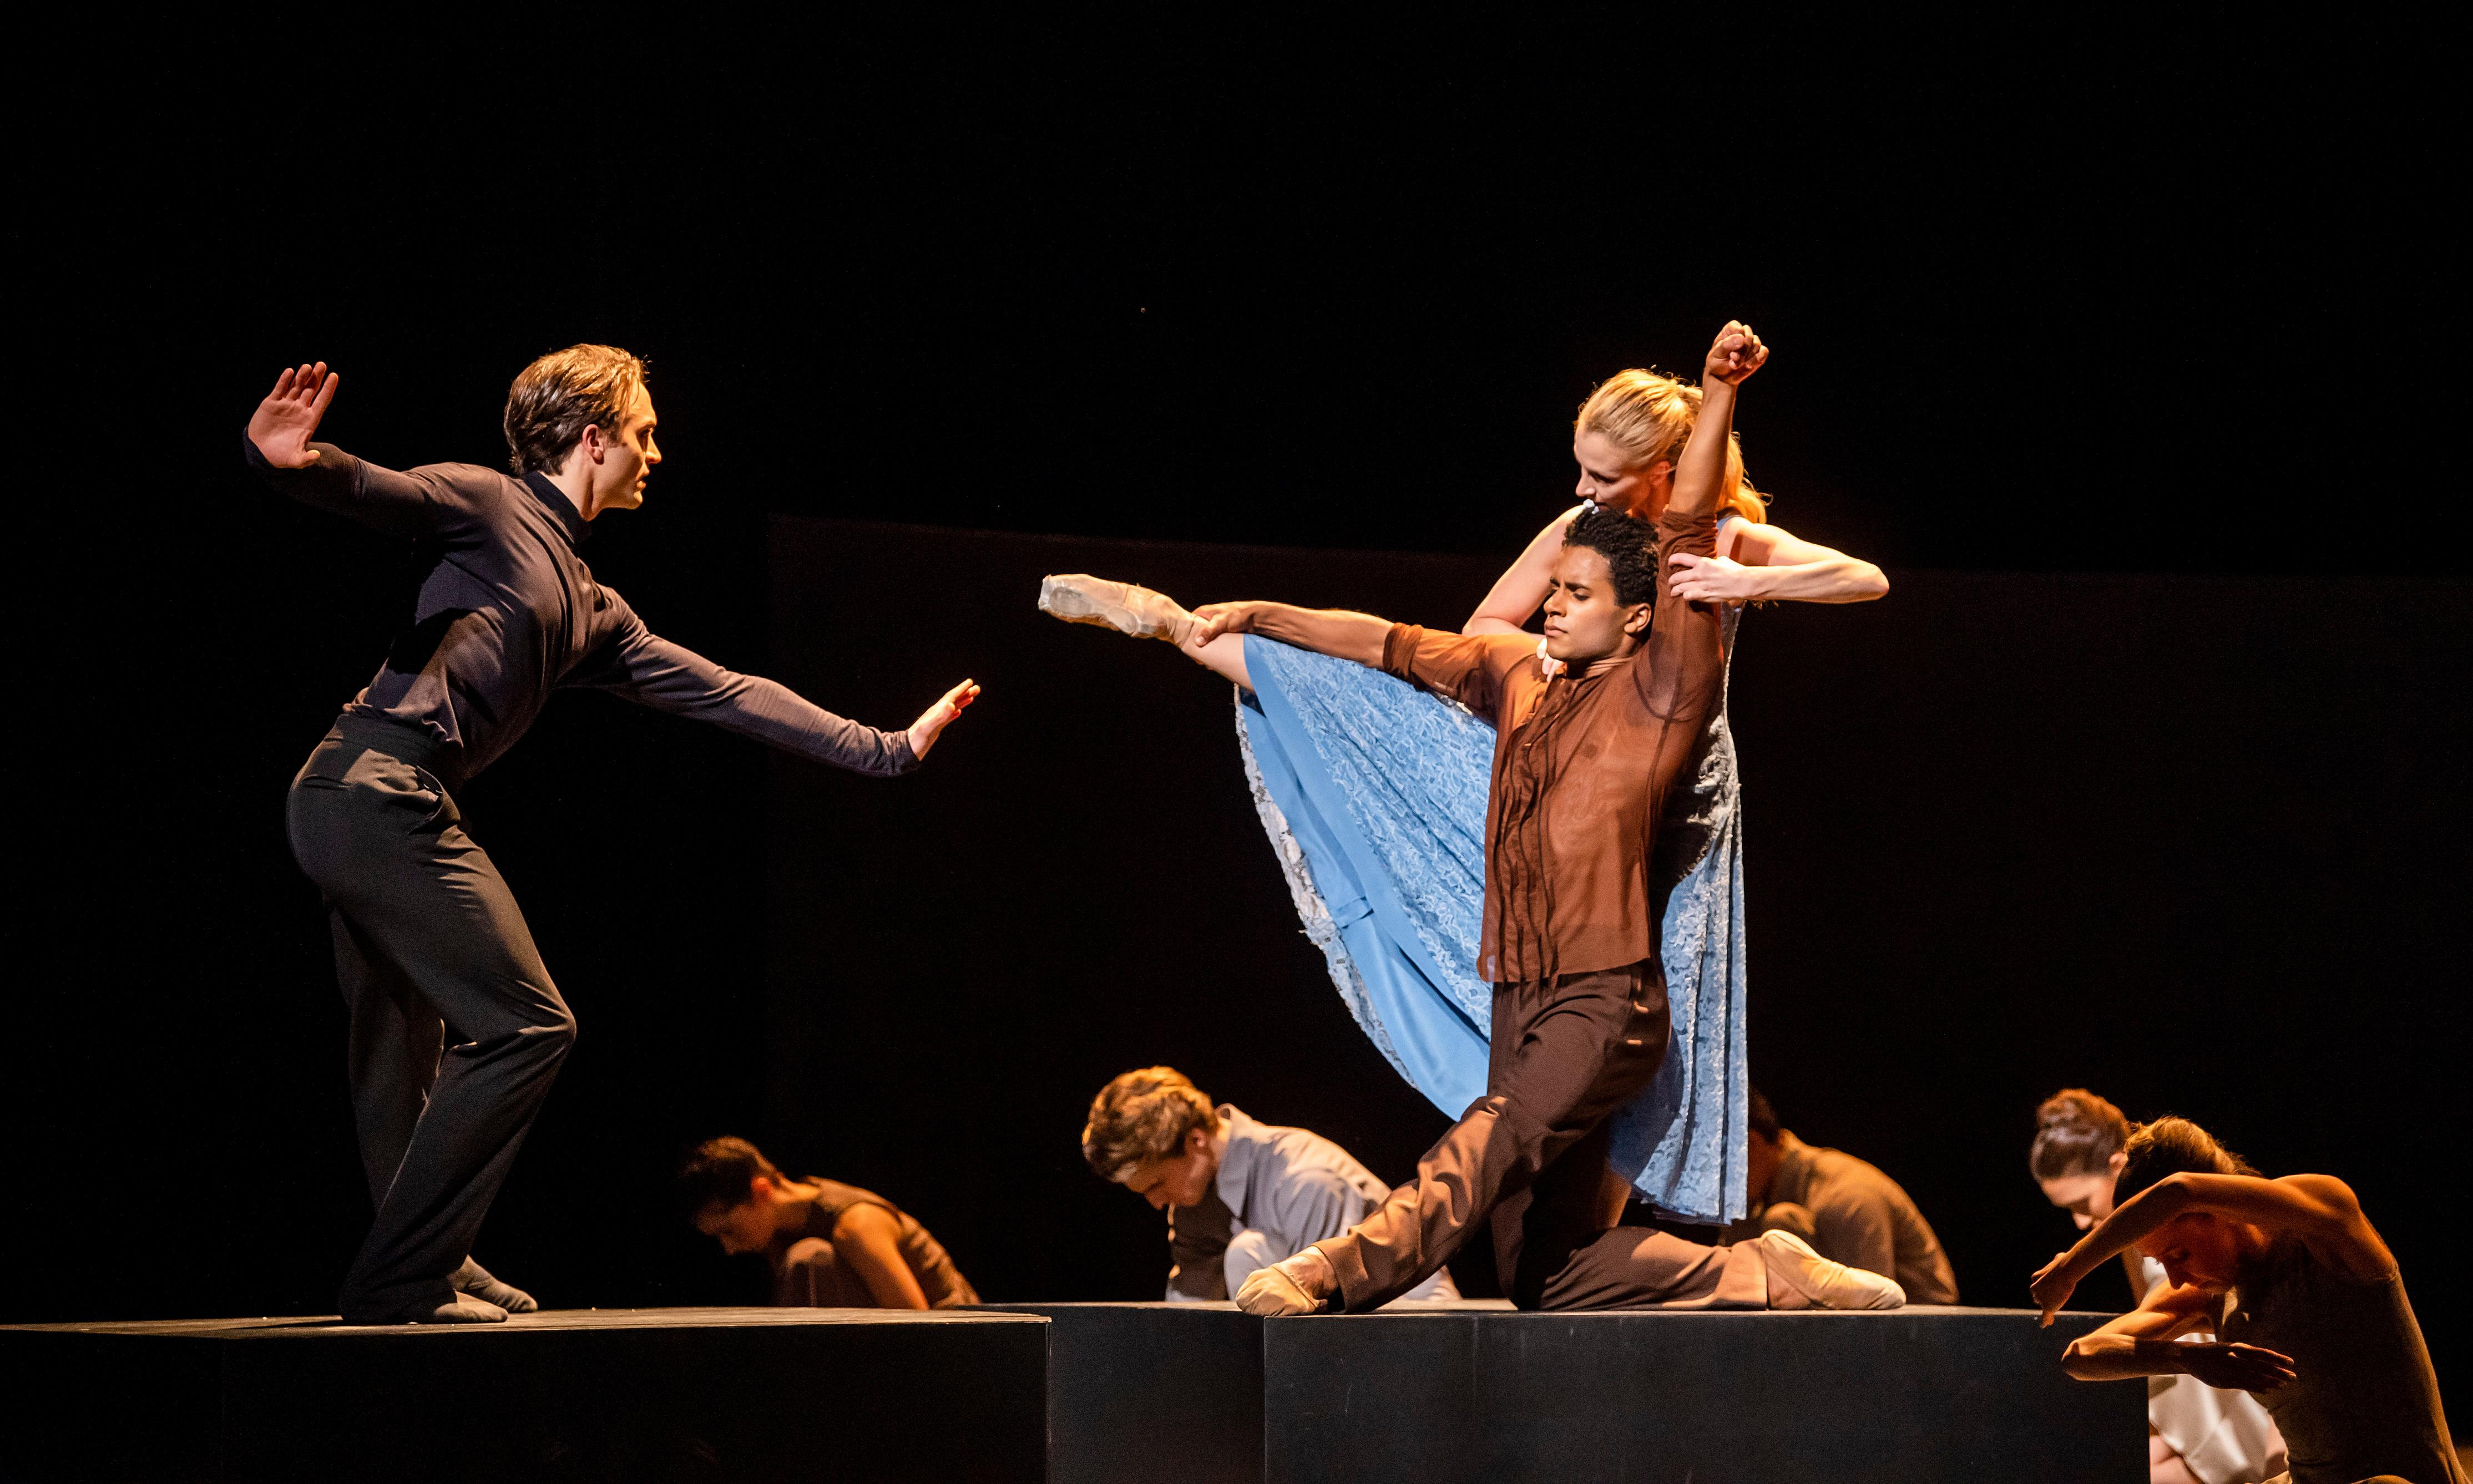 The week in dance: The Cellist/Dances at a Gathering; Message in a Bottle – review